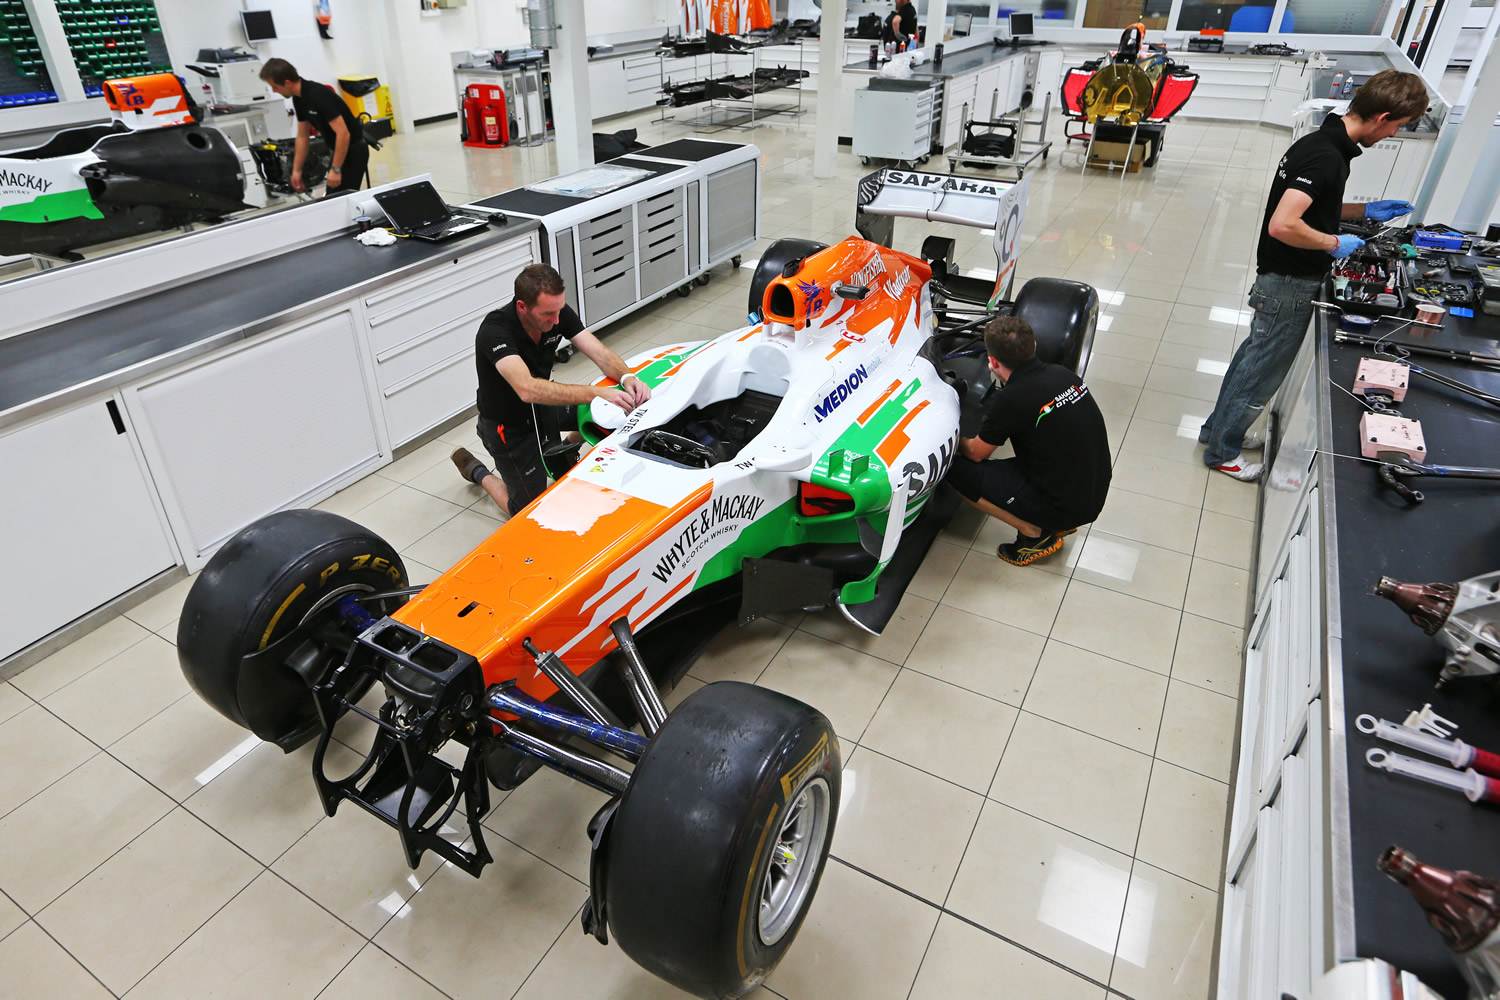 Working at Force India